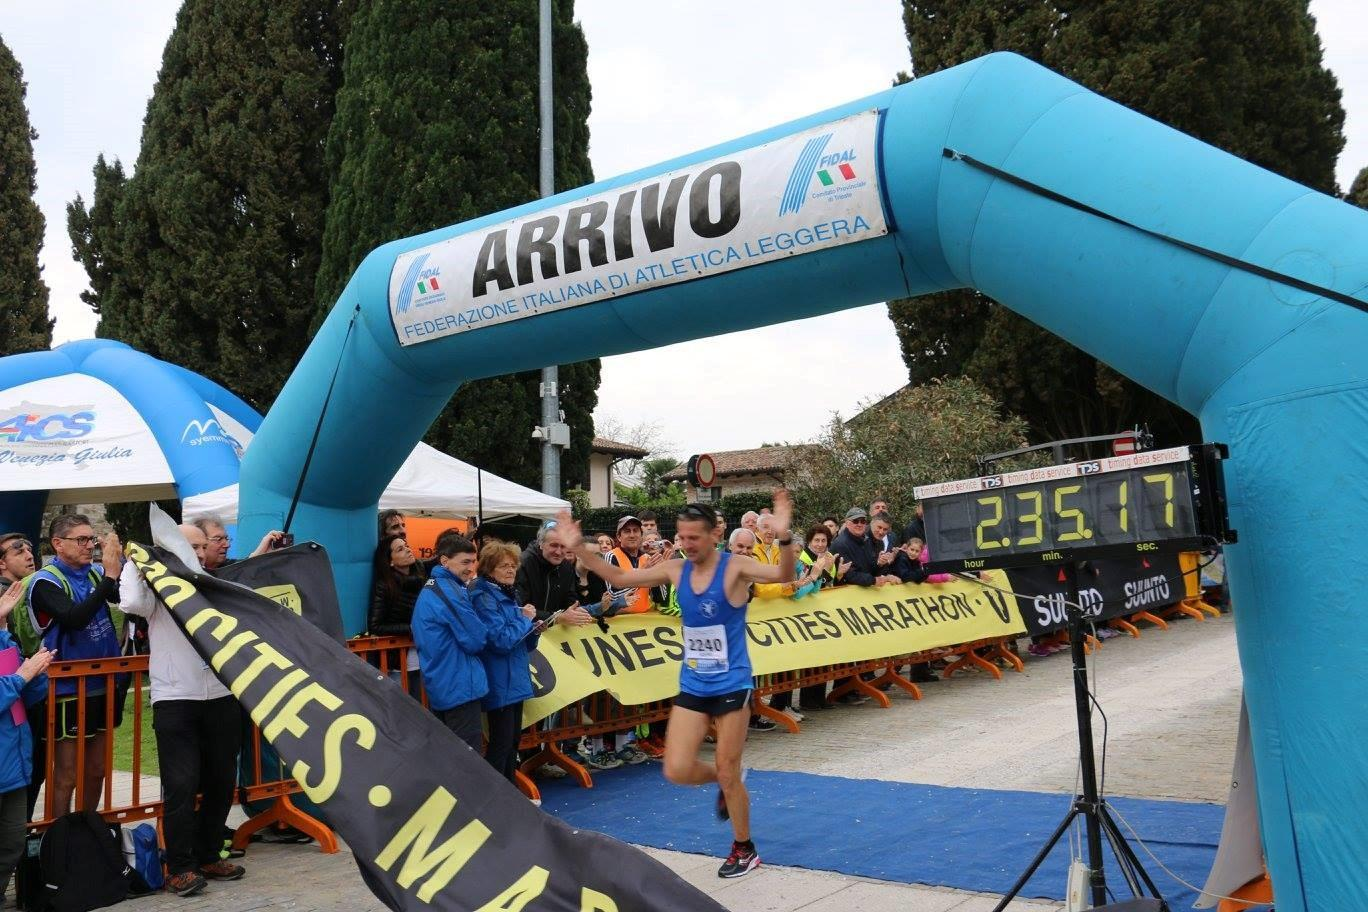 Saverio Giardiello crossing the finish line at the 2017 UNESCO Cities Marathon – © A. Fogar